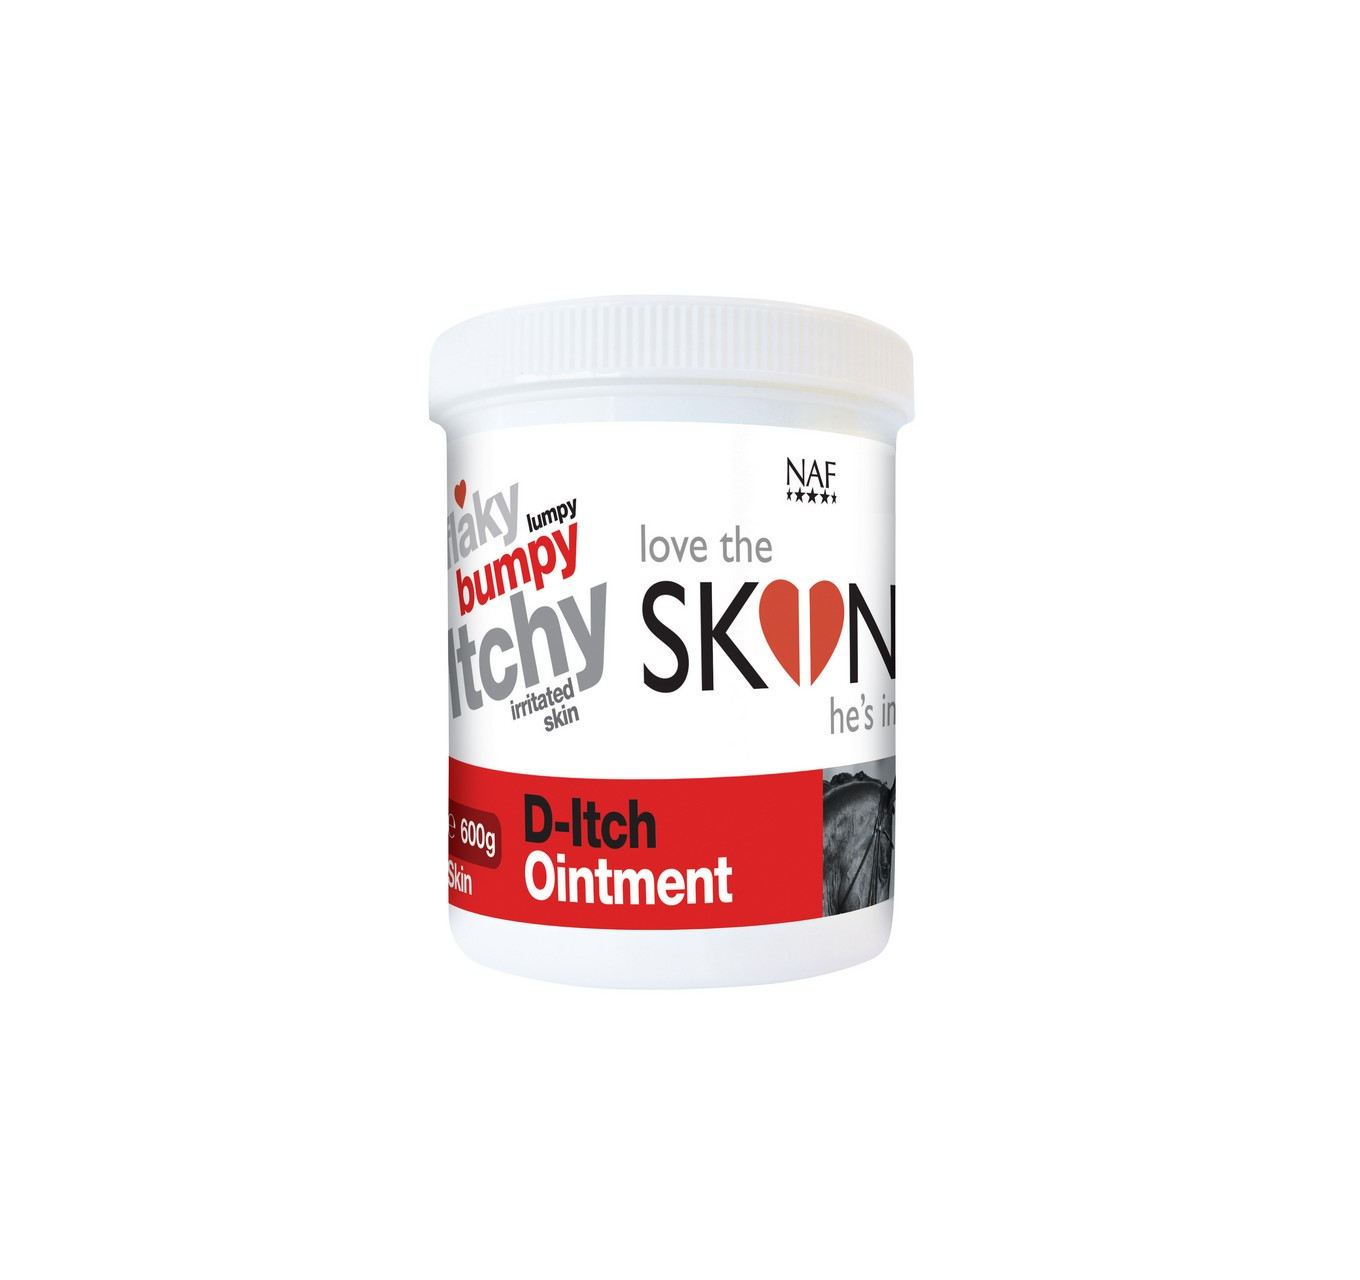 D-Itch Ointment 600g